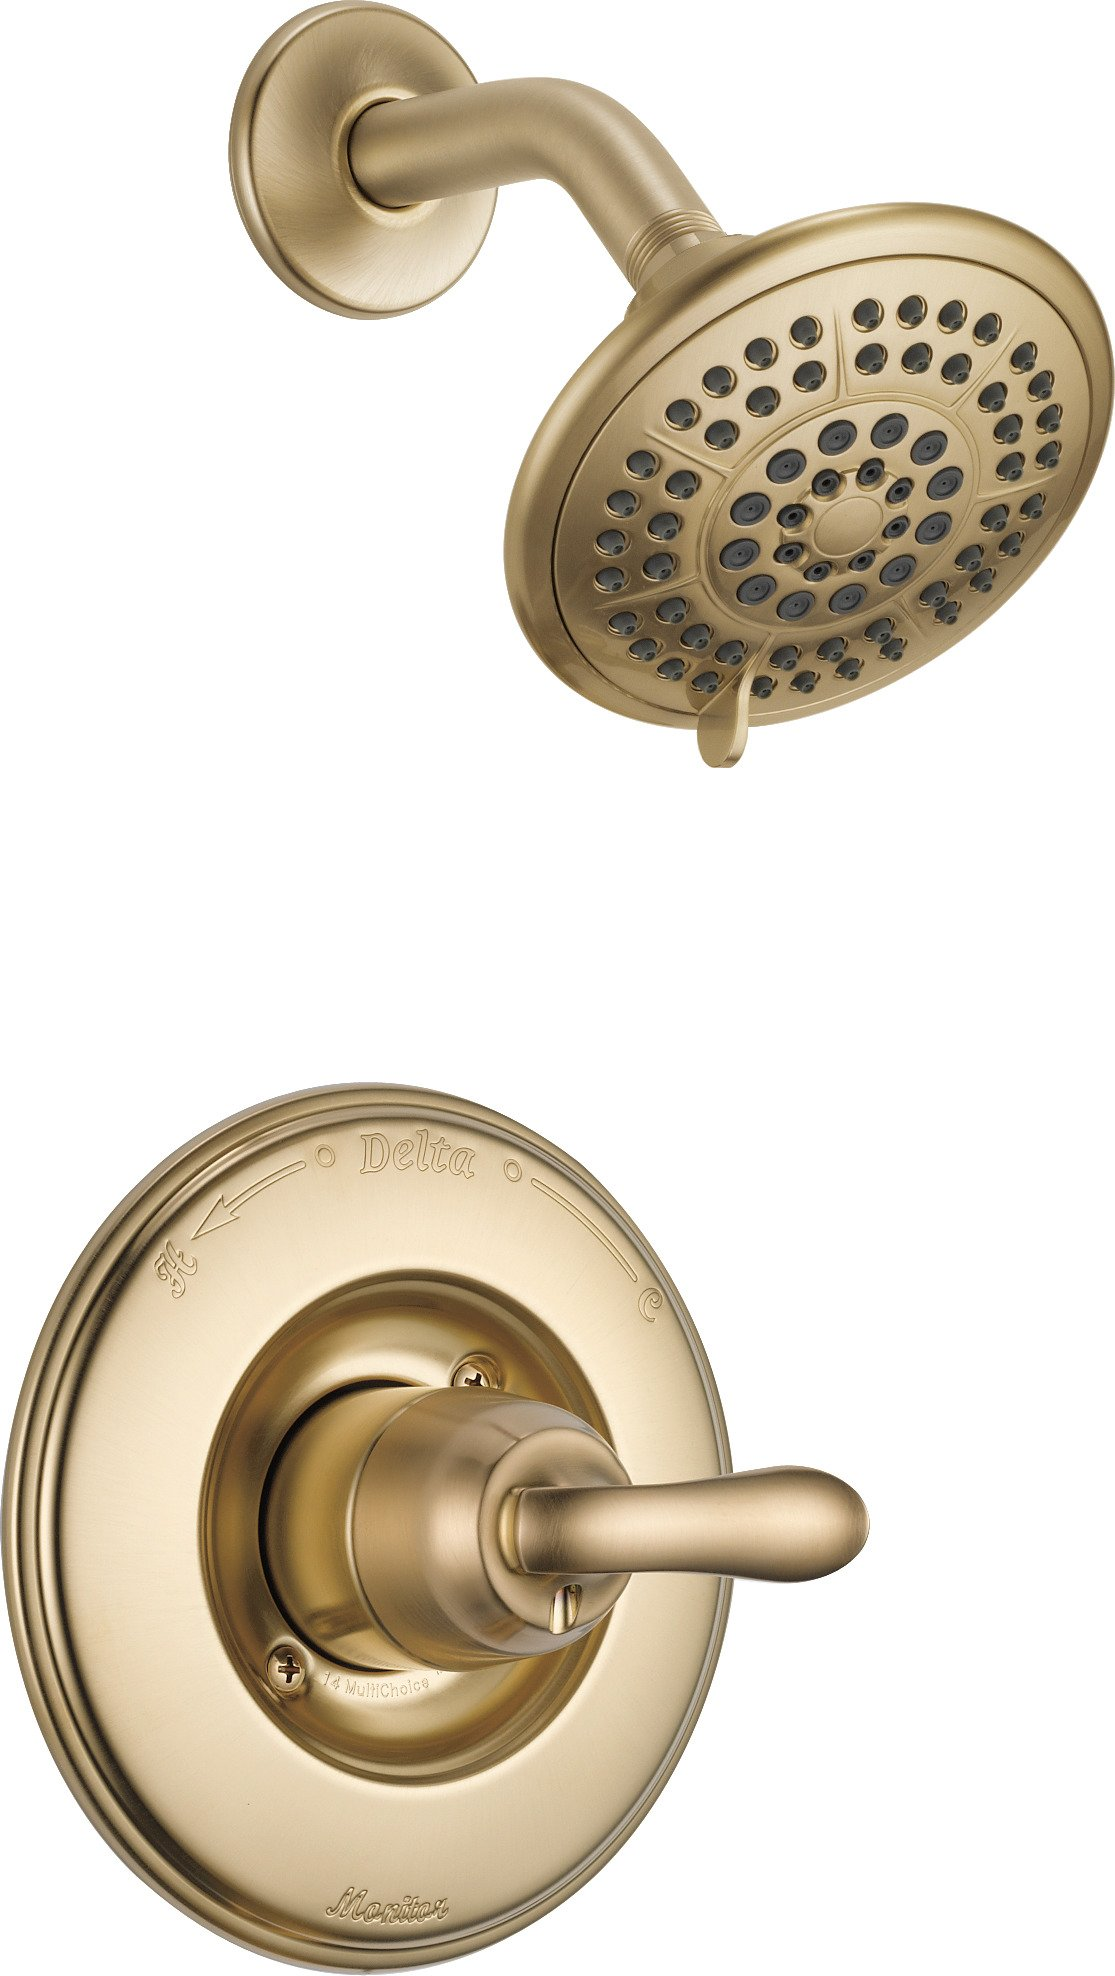 Delta T14294-CZ Linden 14 Series Single-Function Shower Trim Kit with 5-Spray Touch Clean Shower Head, Champagne Bronze (Valve Not Included) by DELTA FAUCET